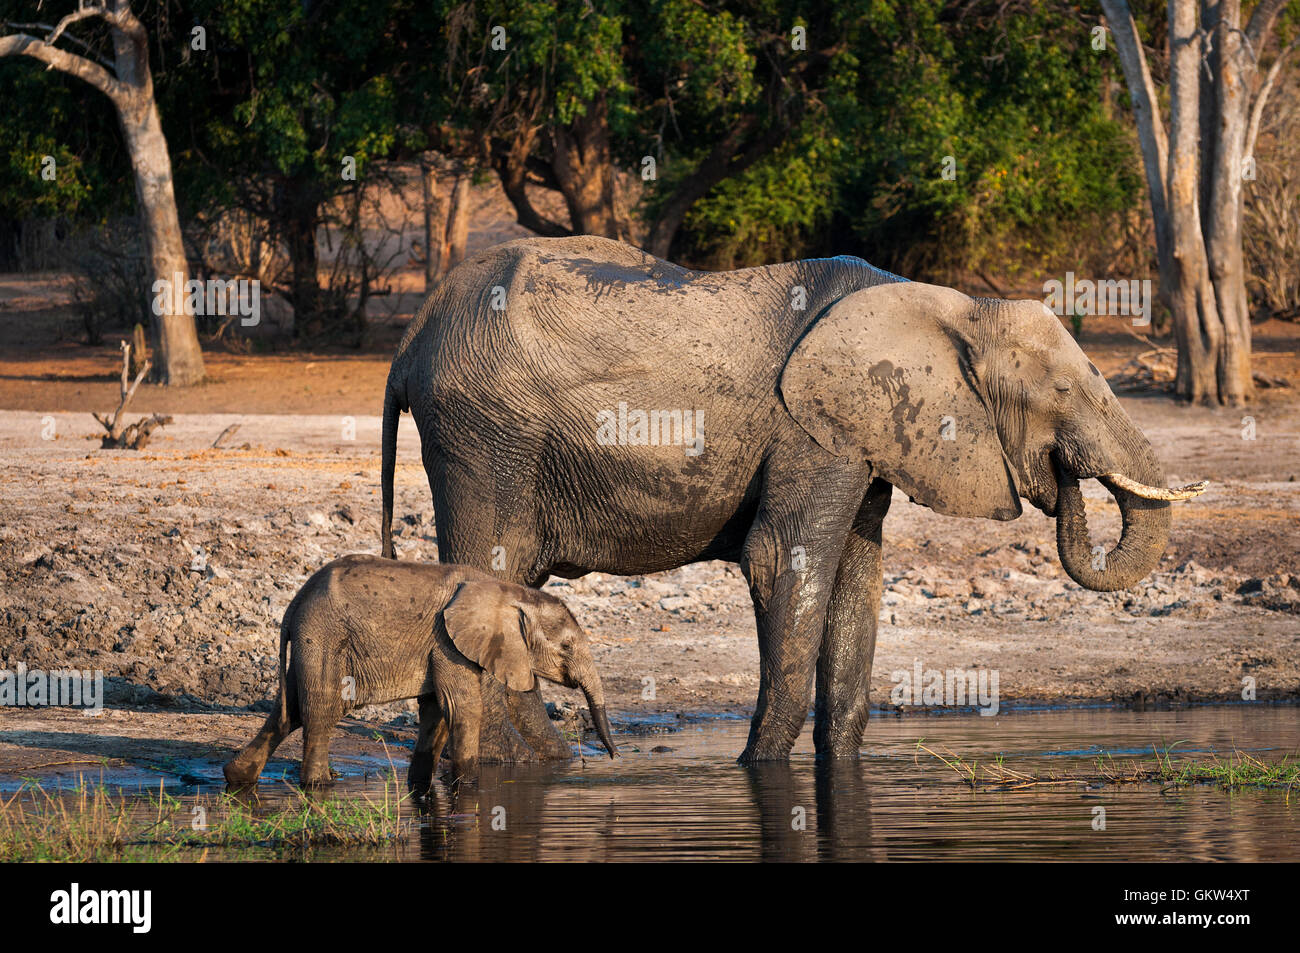 One elephant and its cub drinking water in the Chobe River, Chobe National Park, in Botswana, Africa - Stock Image